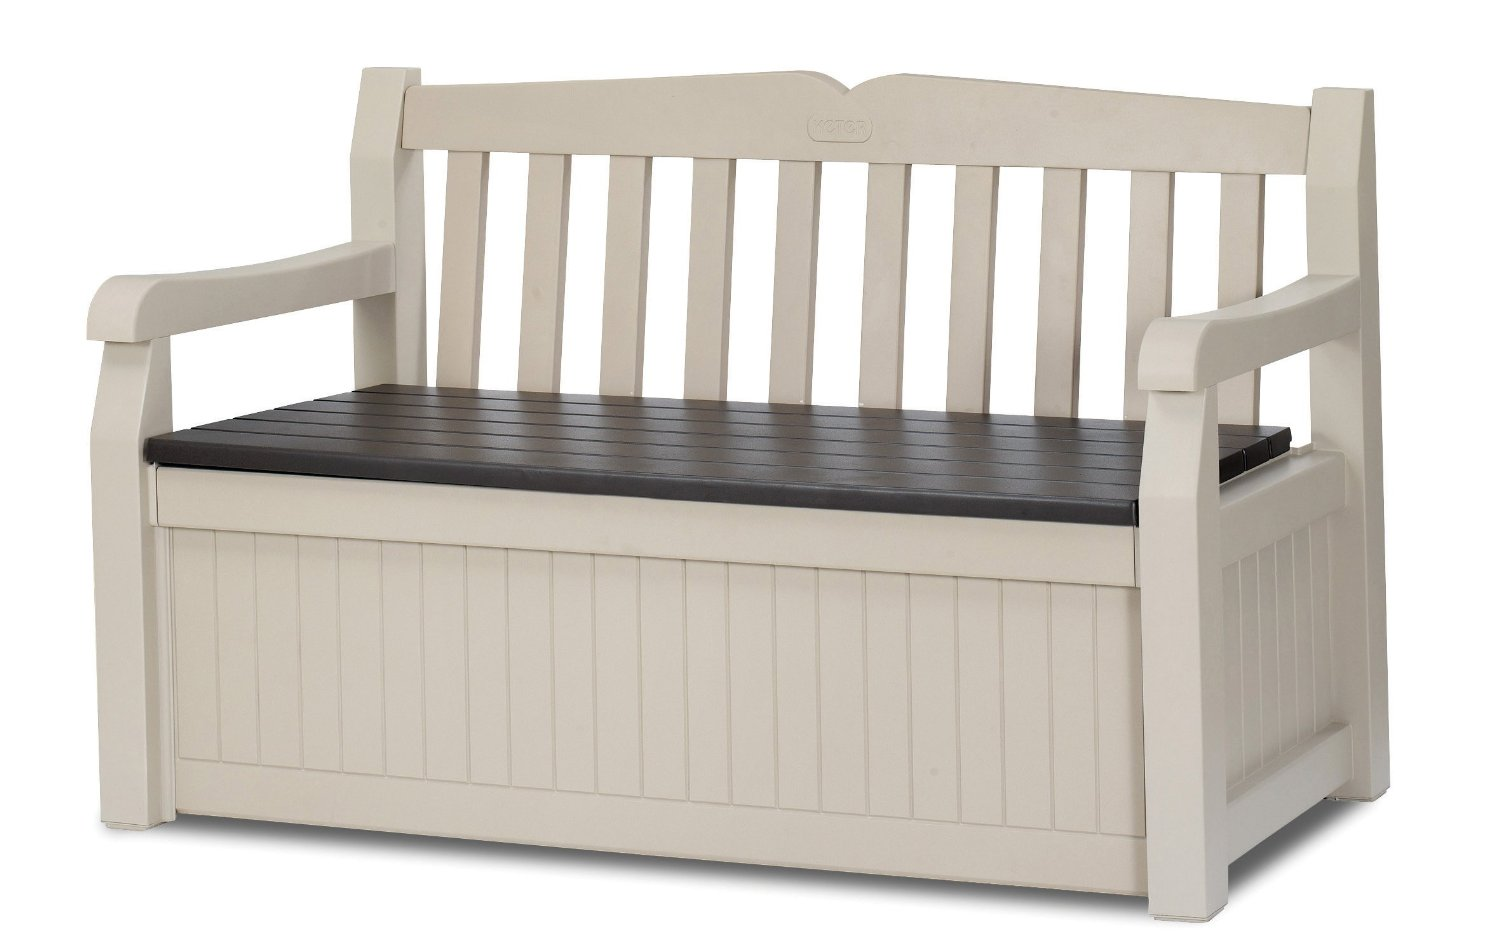 Awesome Target Outdoor Storage Bench Rubbermaid rubbermaid patio storage bench